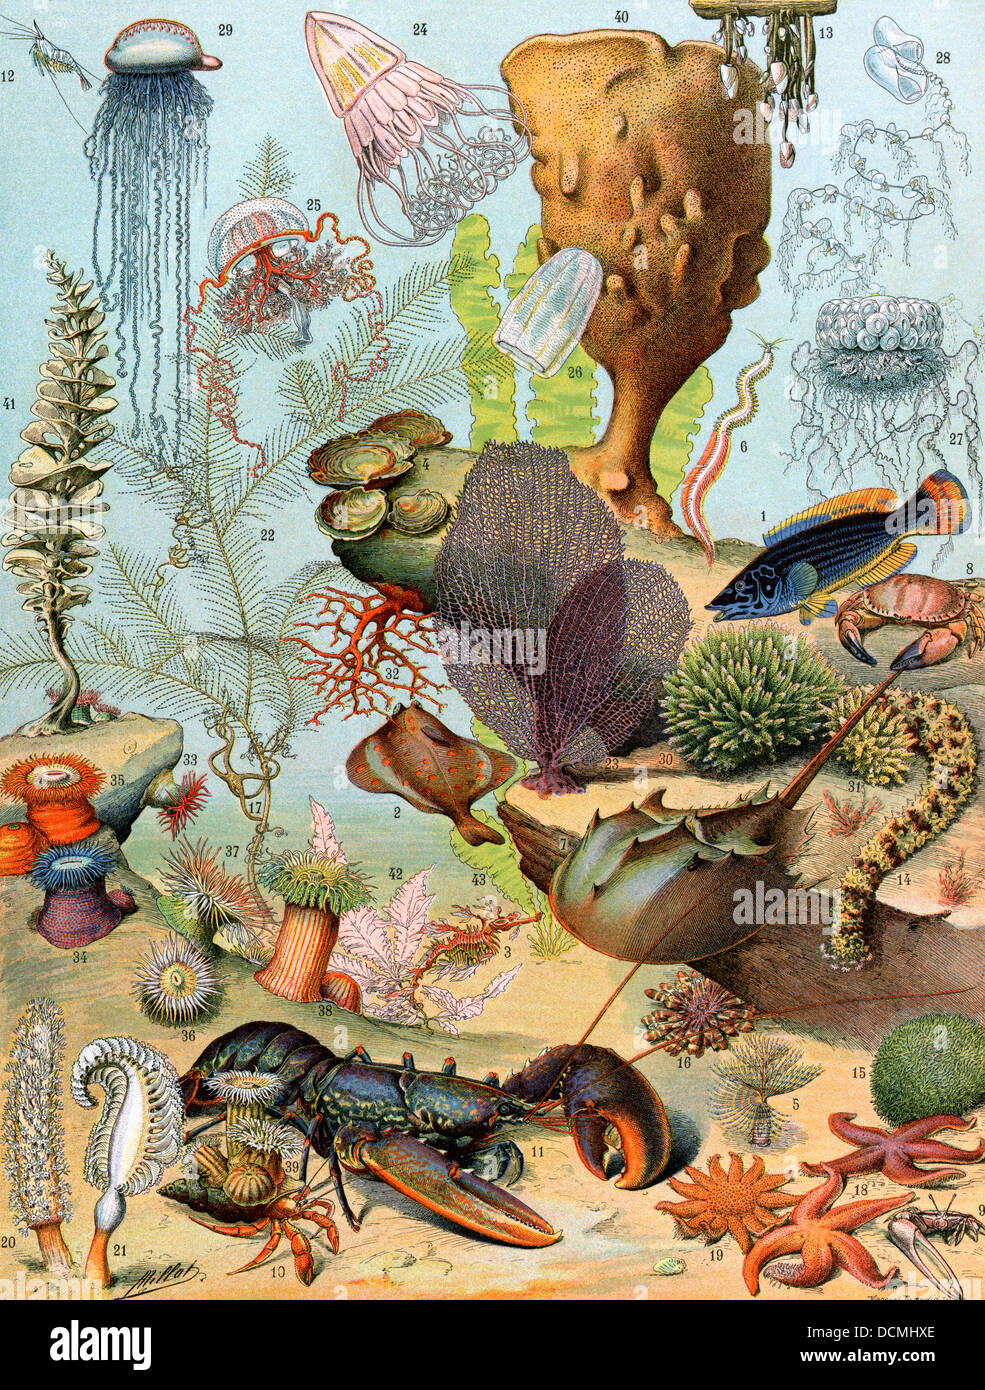 Life on the sea floor, including crustaceans and molluscs. Stock Foto